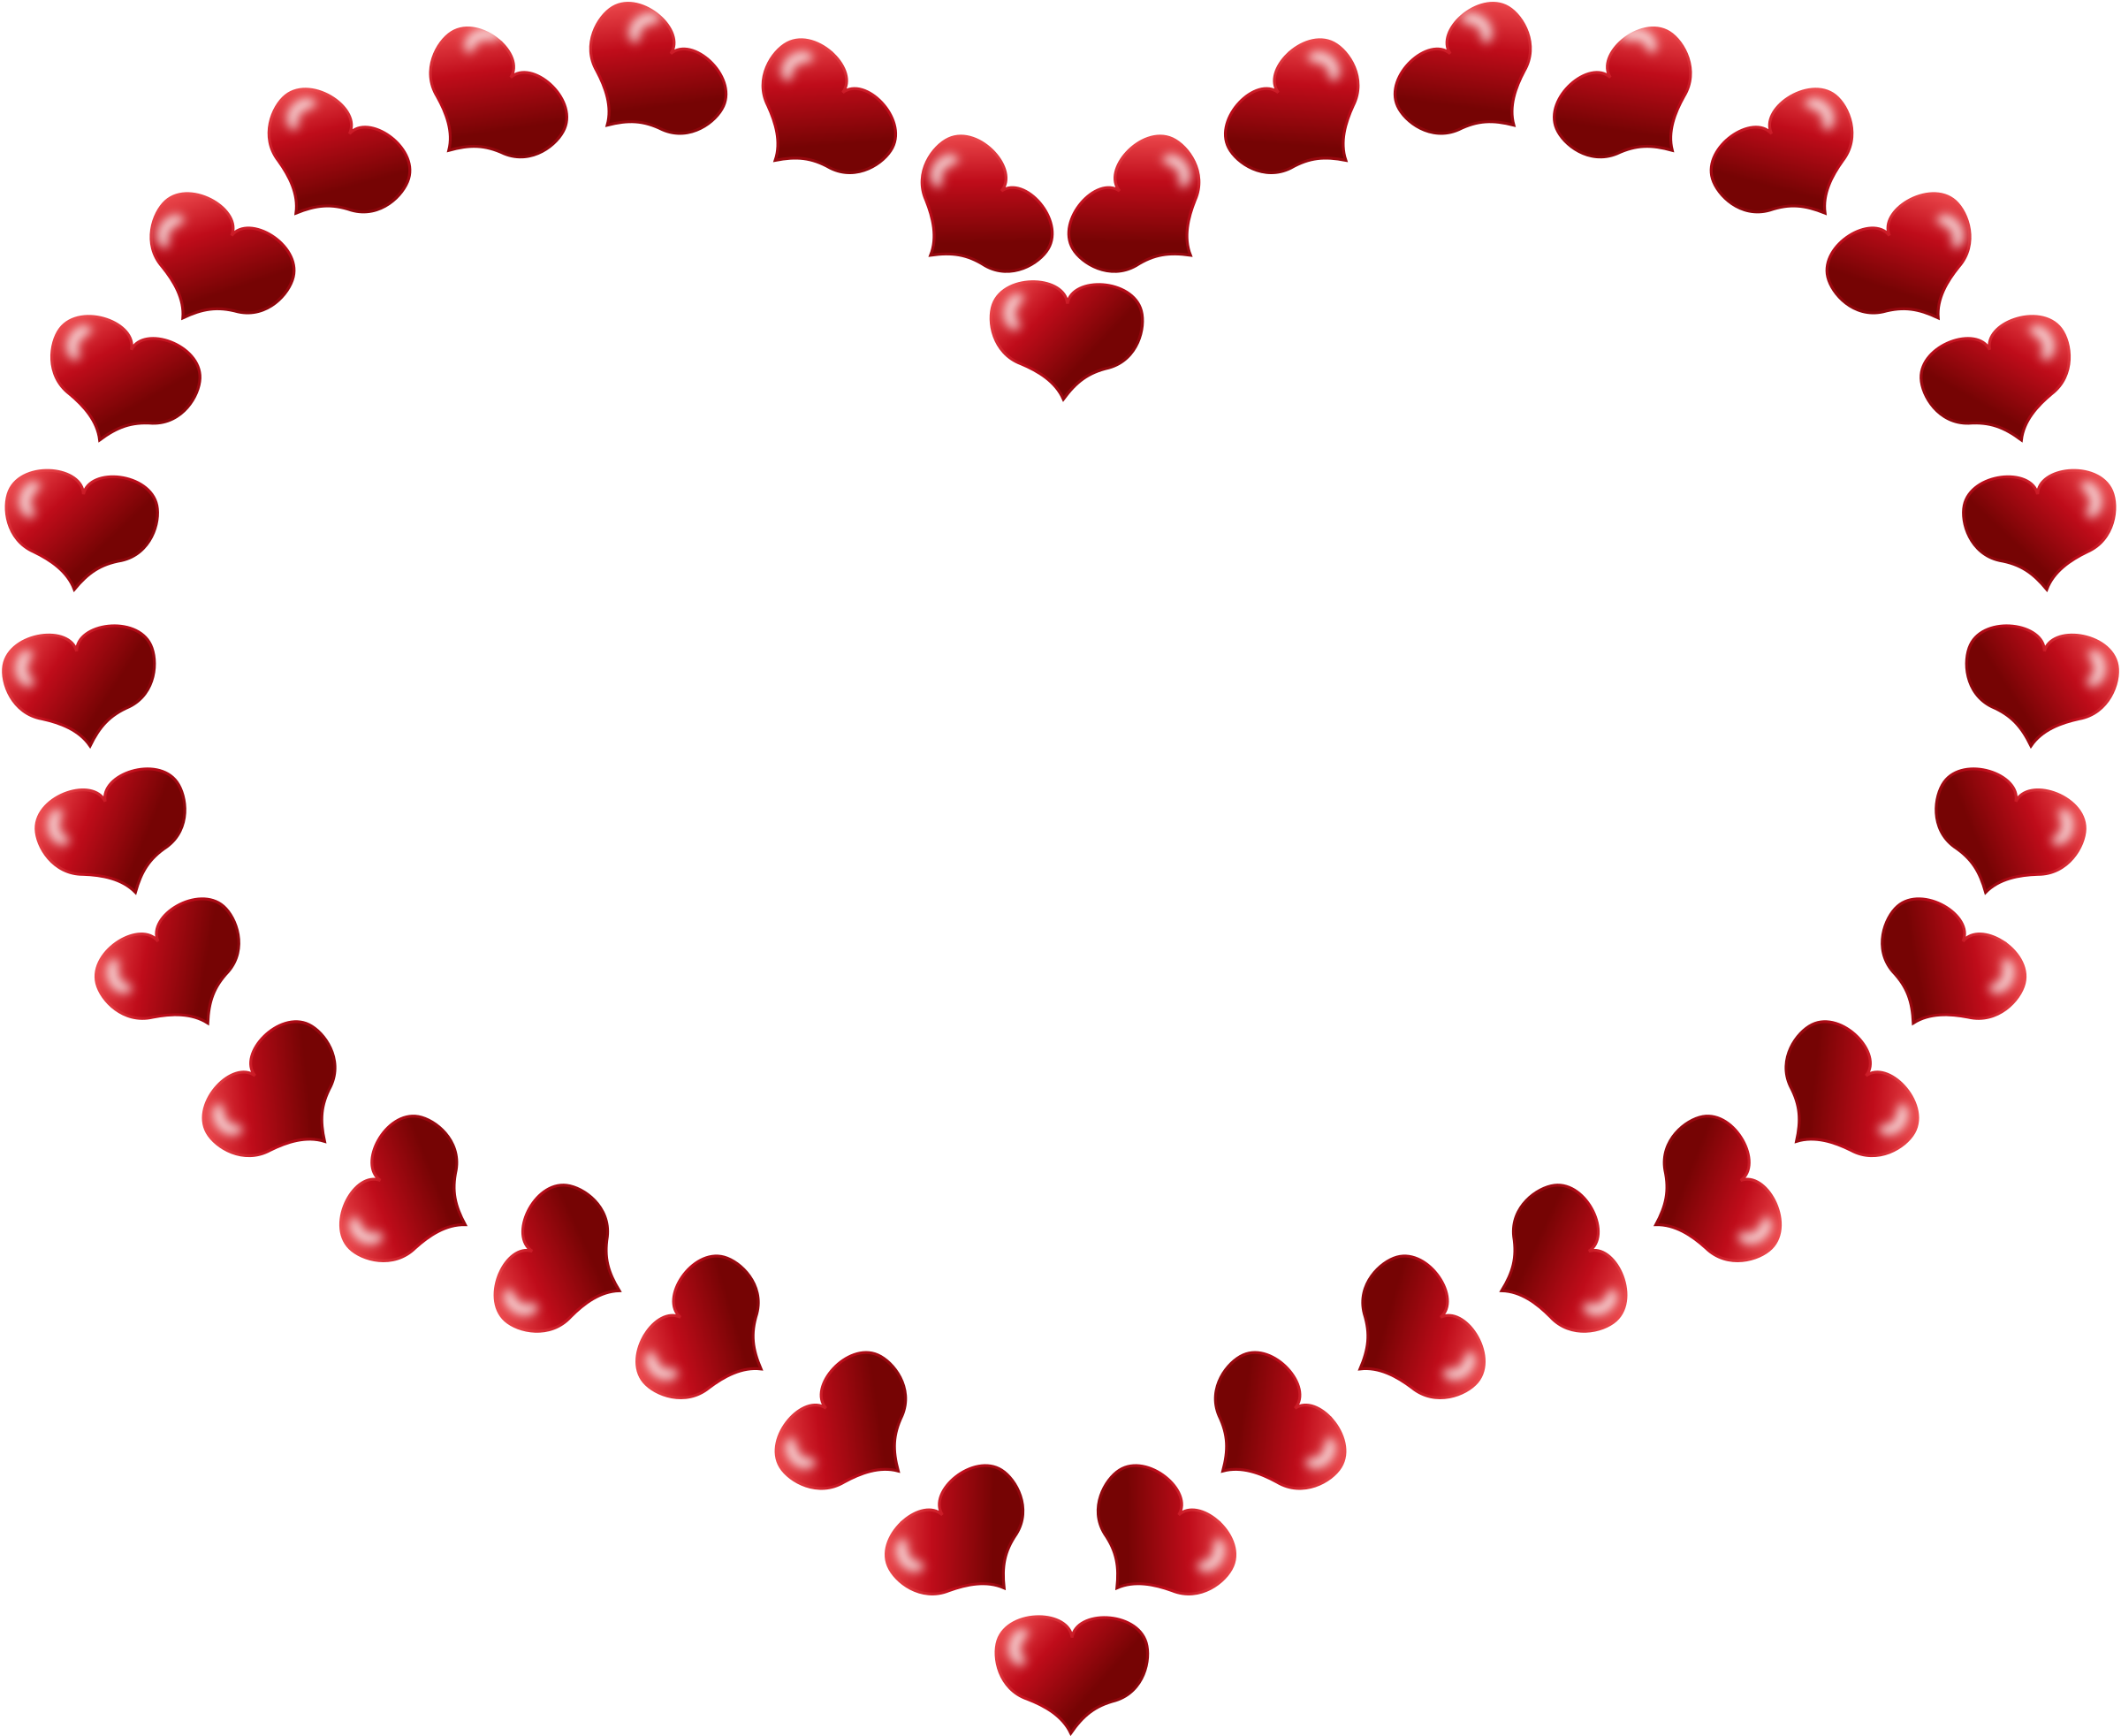 Ekg clipart heart shaped. Red border with little